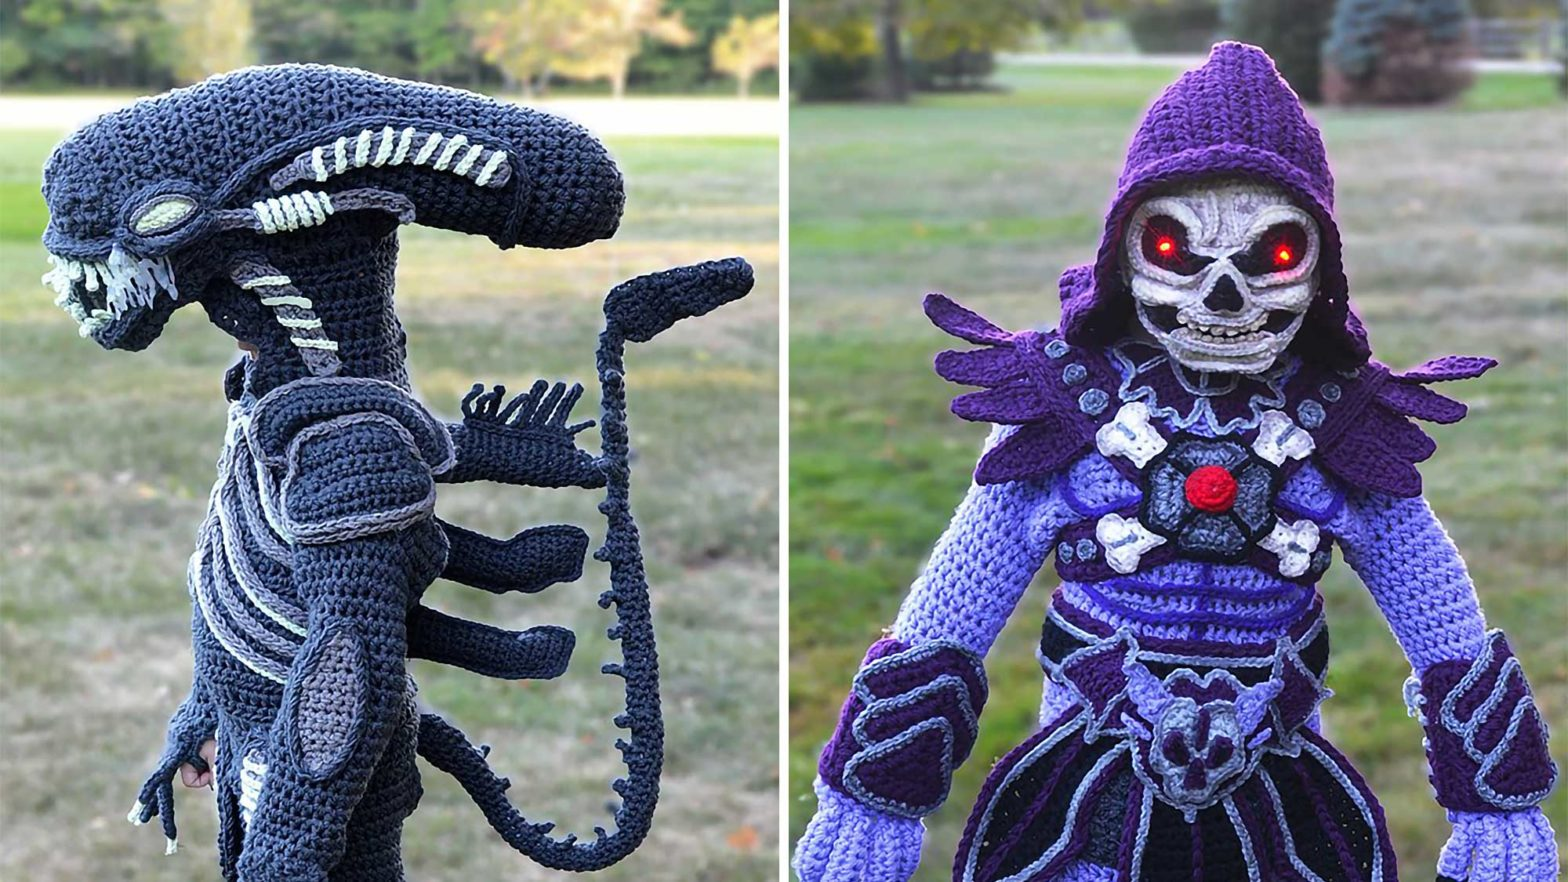 Crochet Alien and Skeletor Costumes